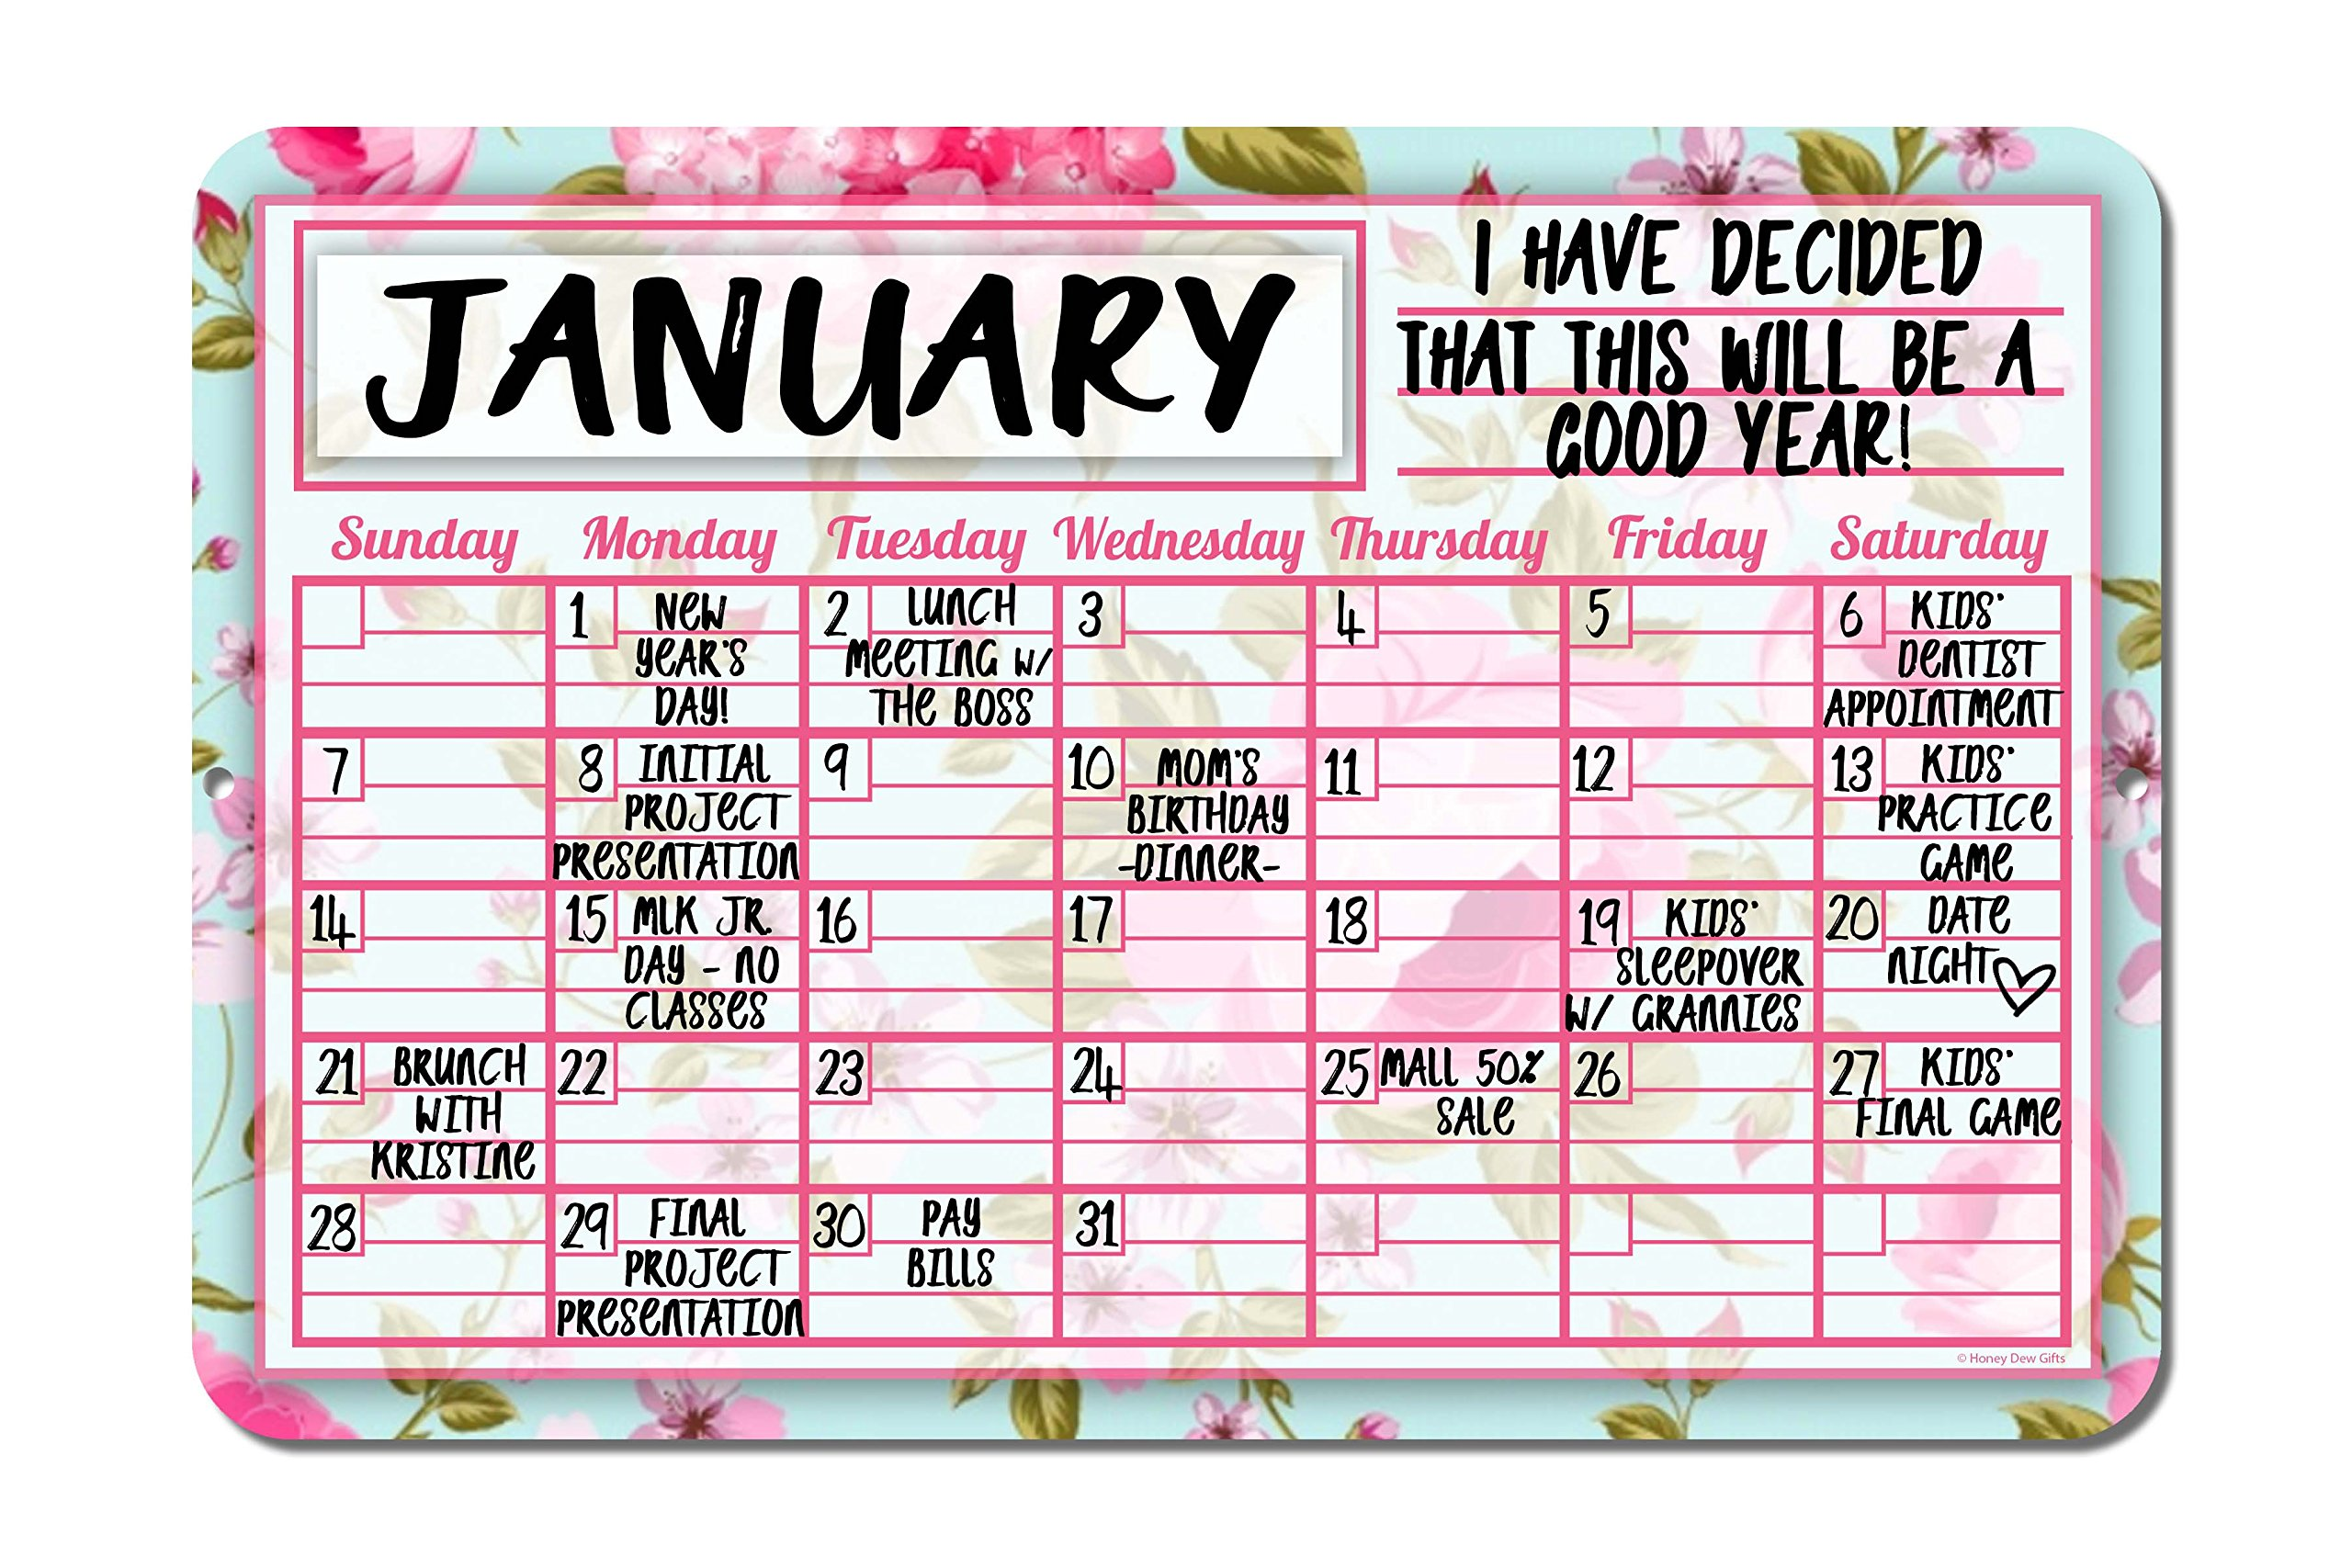 Pink Floral Shabby Chic Decorative Wall Calendar Planning Board - Reusable Easy Clean